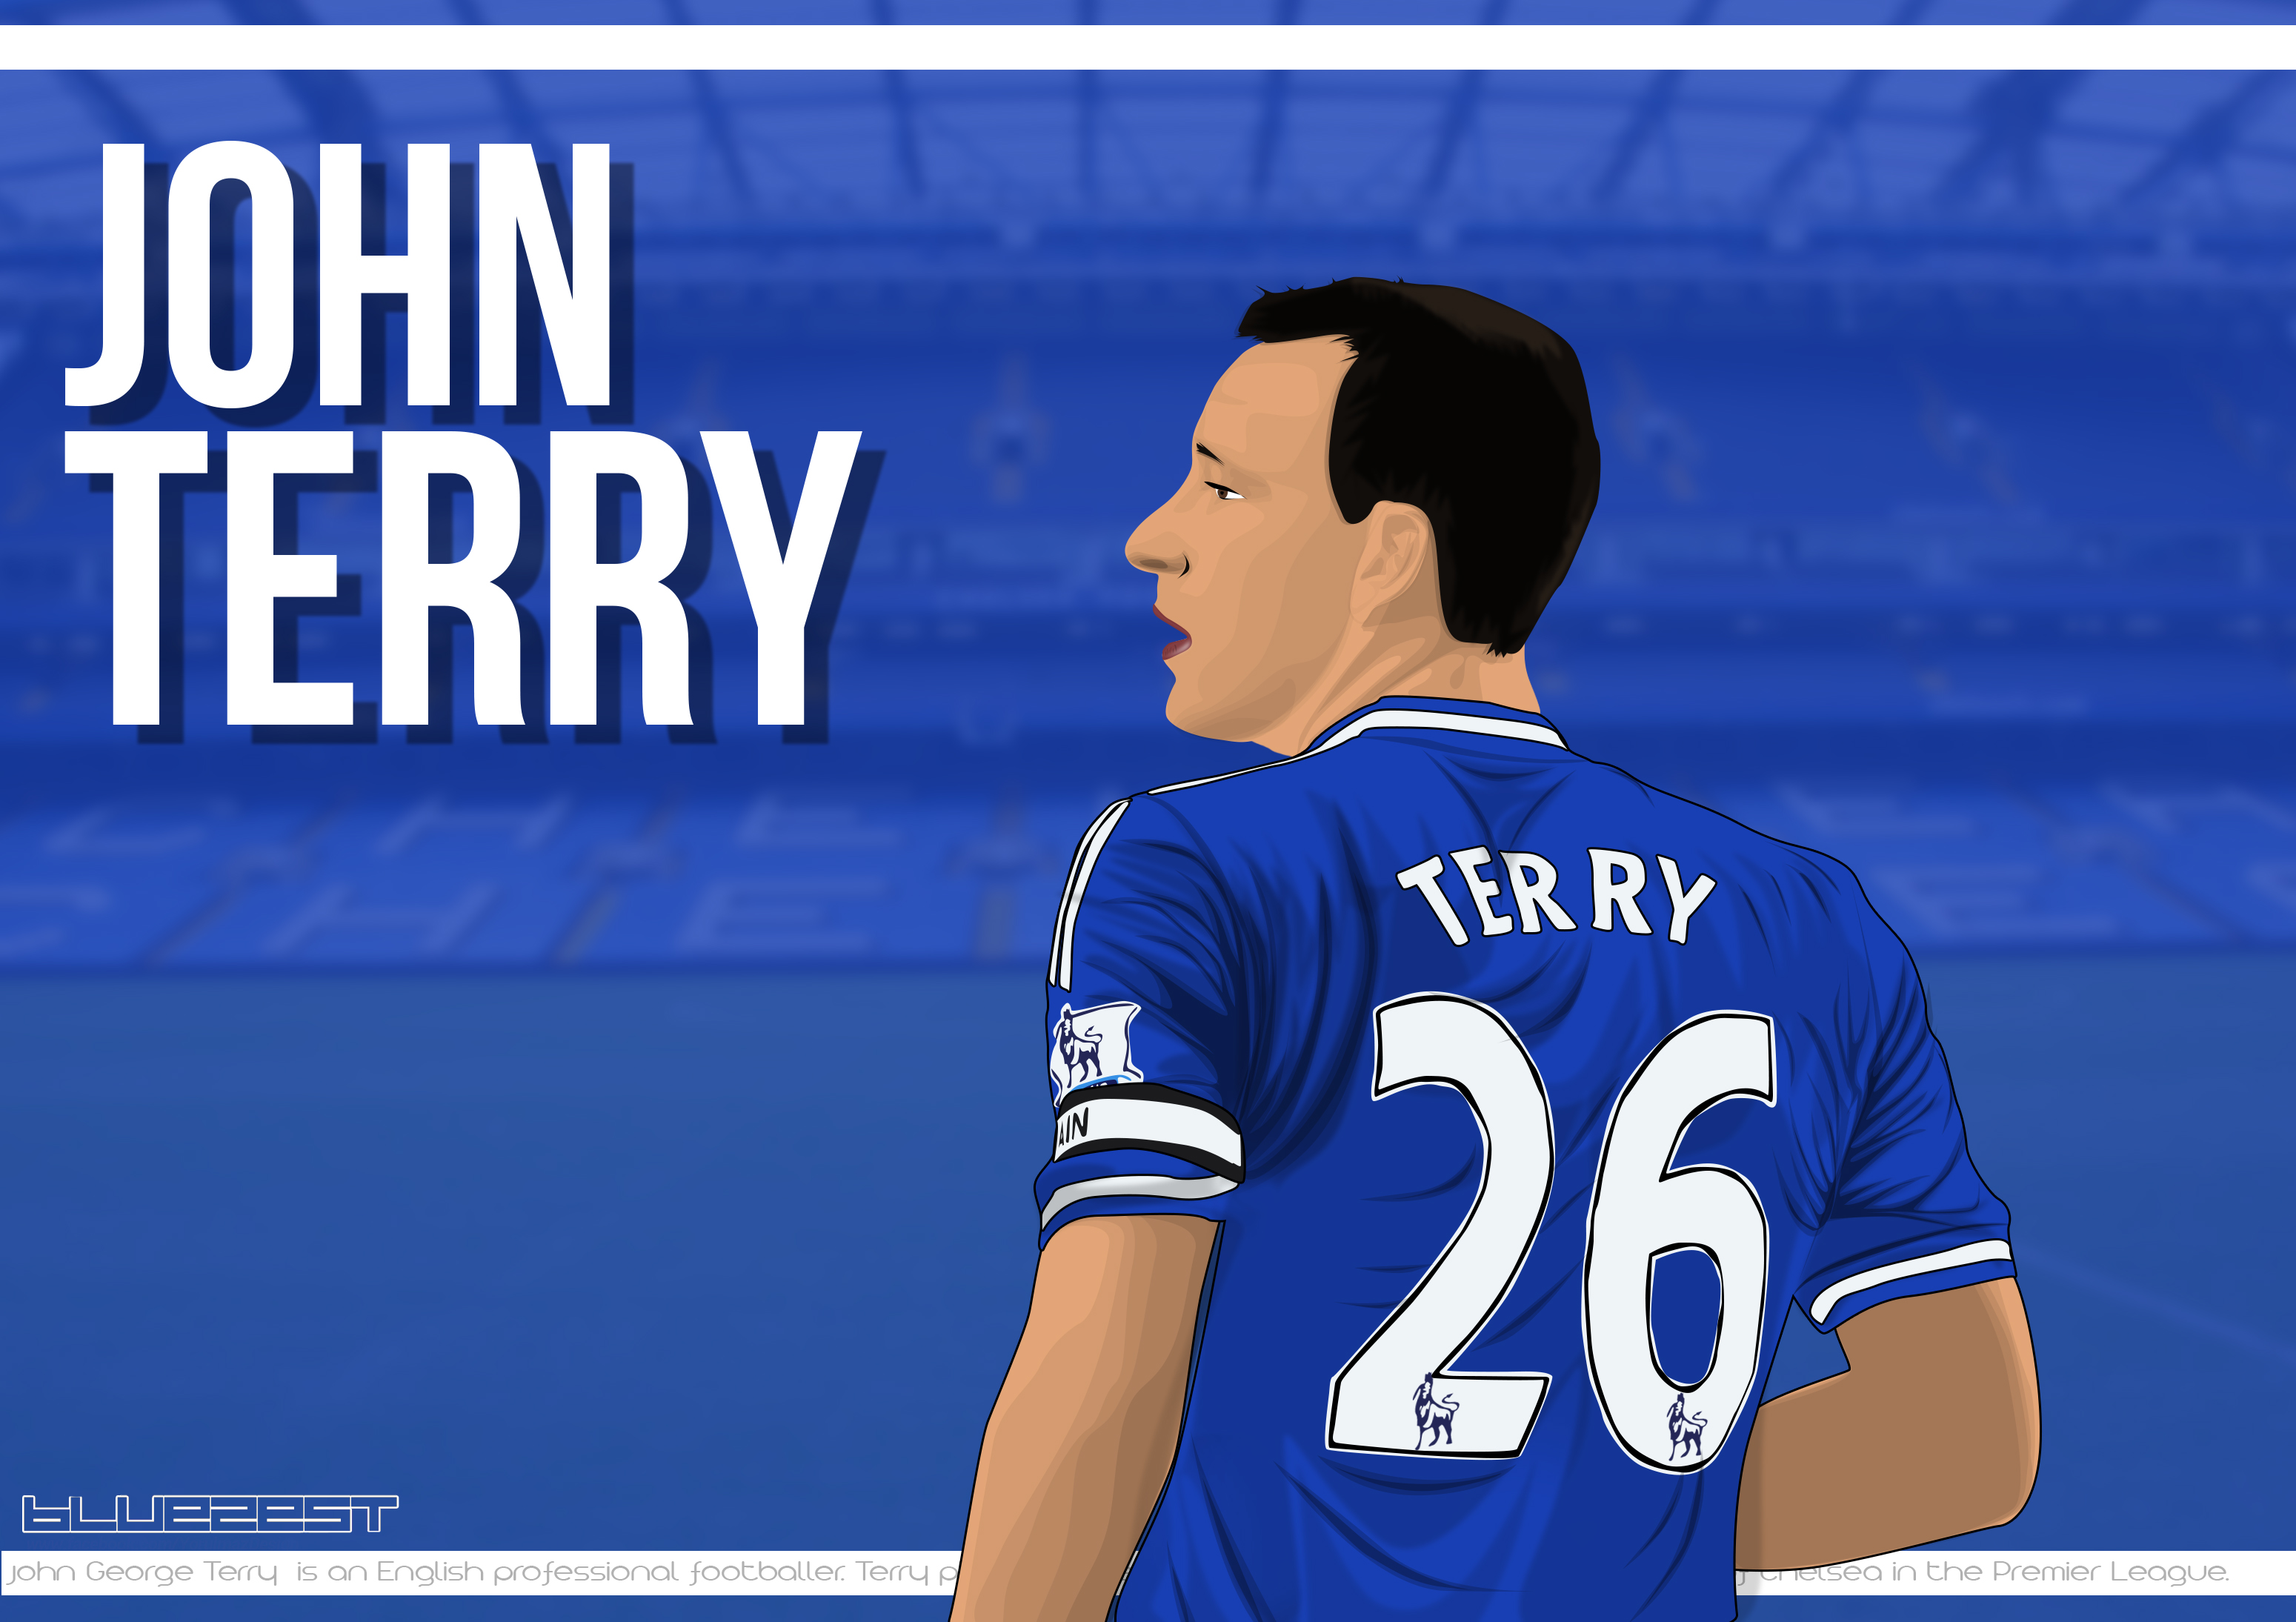 John Terry Vector By Bluezest1997 On DeviantArt